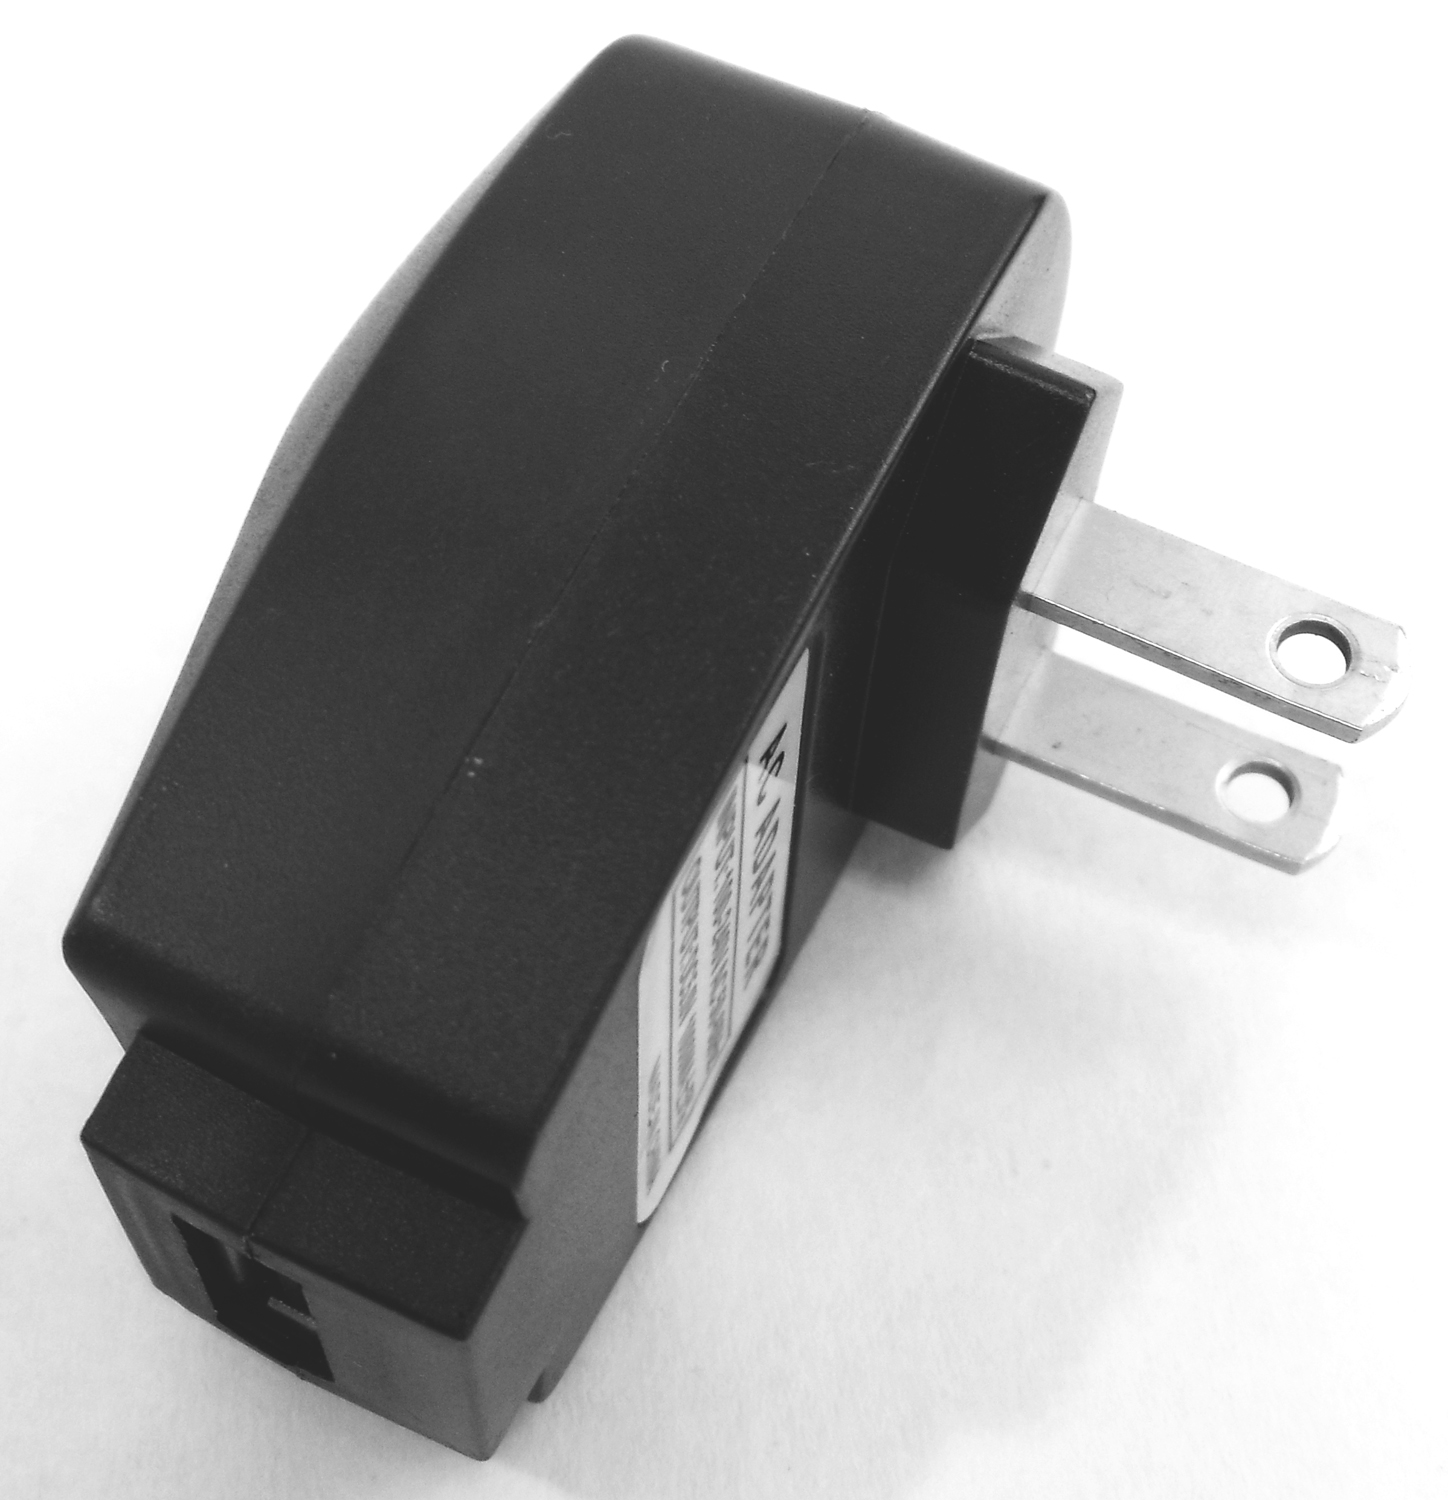 USBCH1 - Black AC Charger With Single Usb Port